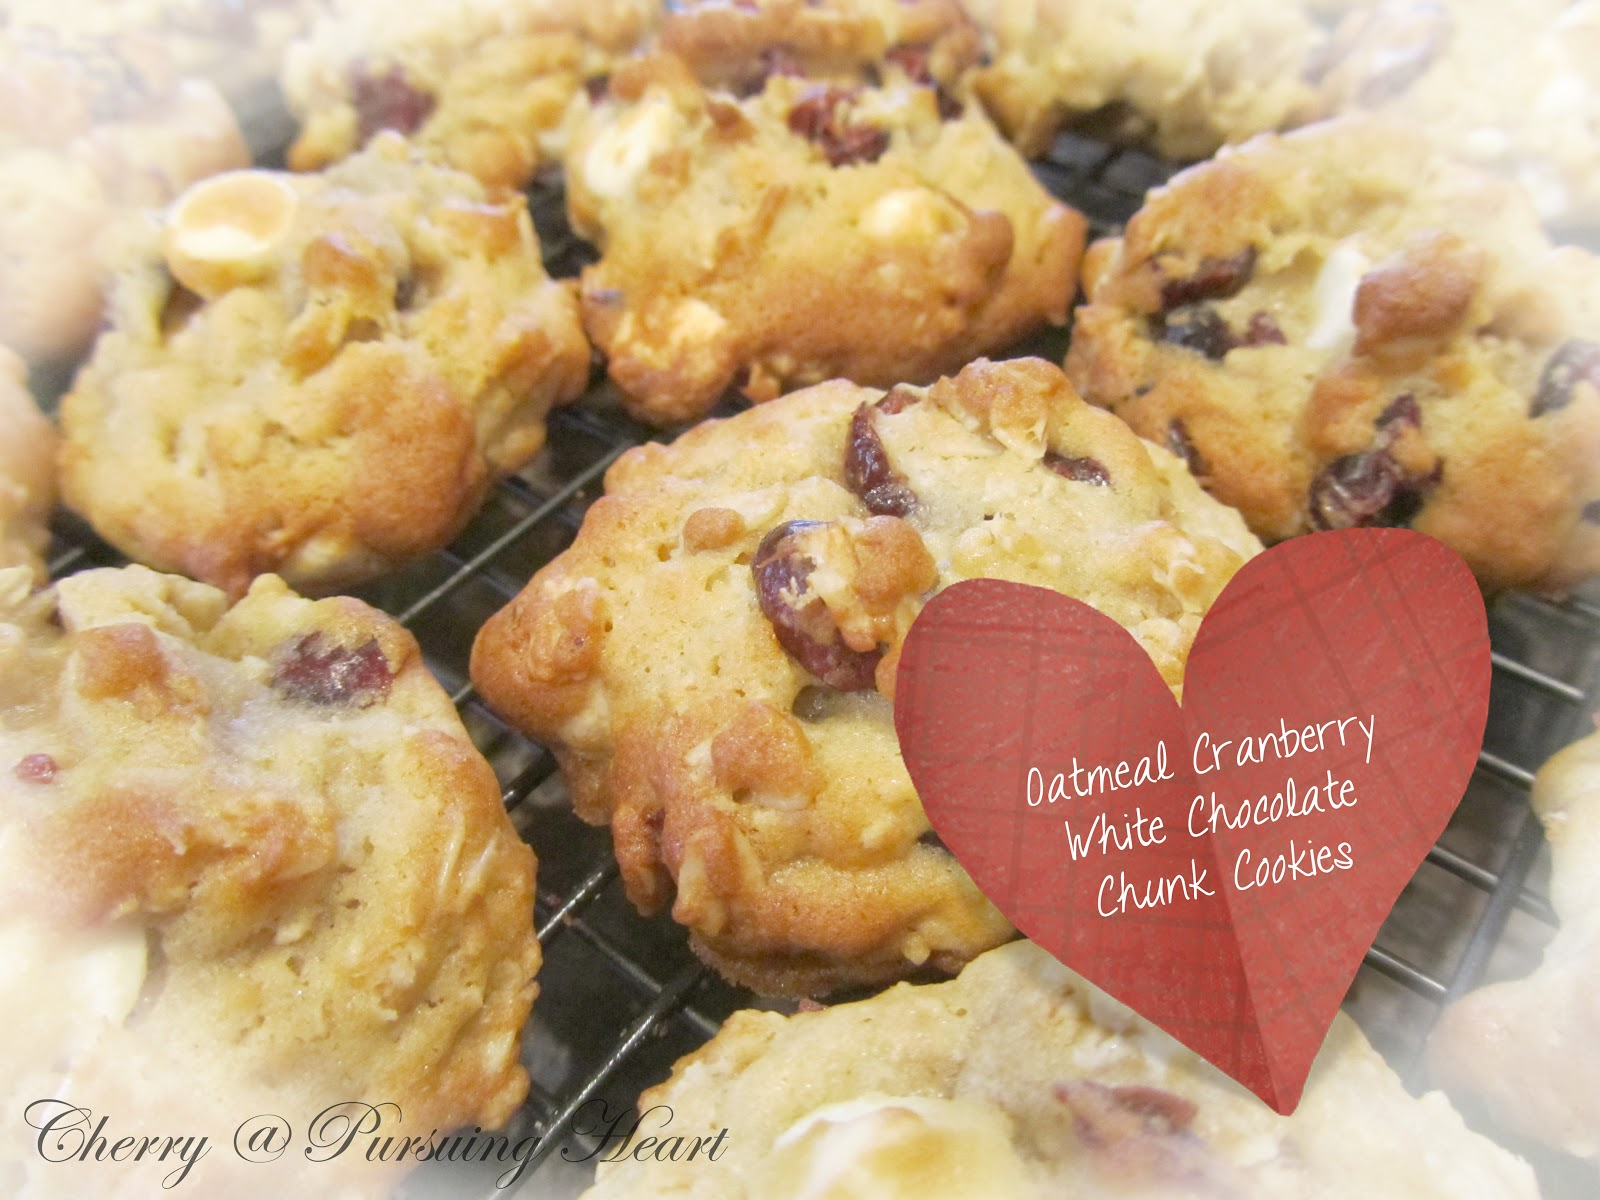 Pursuing Heart: Oatmeal Cranberry White Chocolate Chunk Cookies